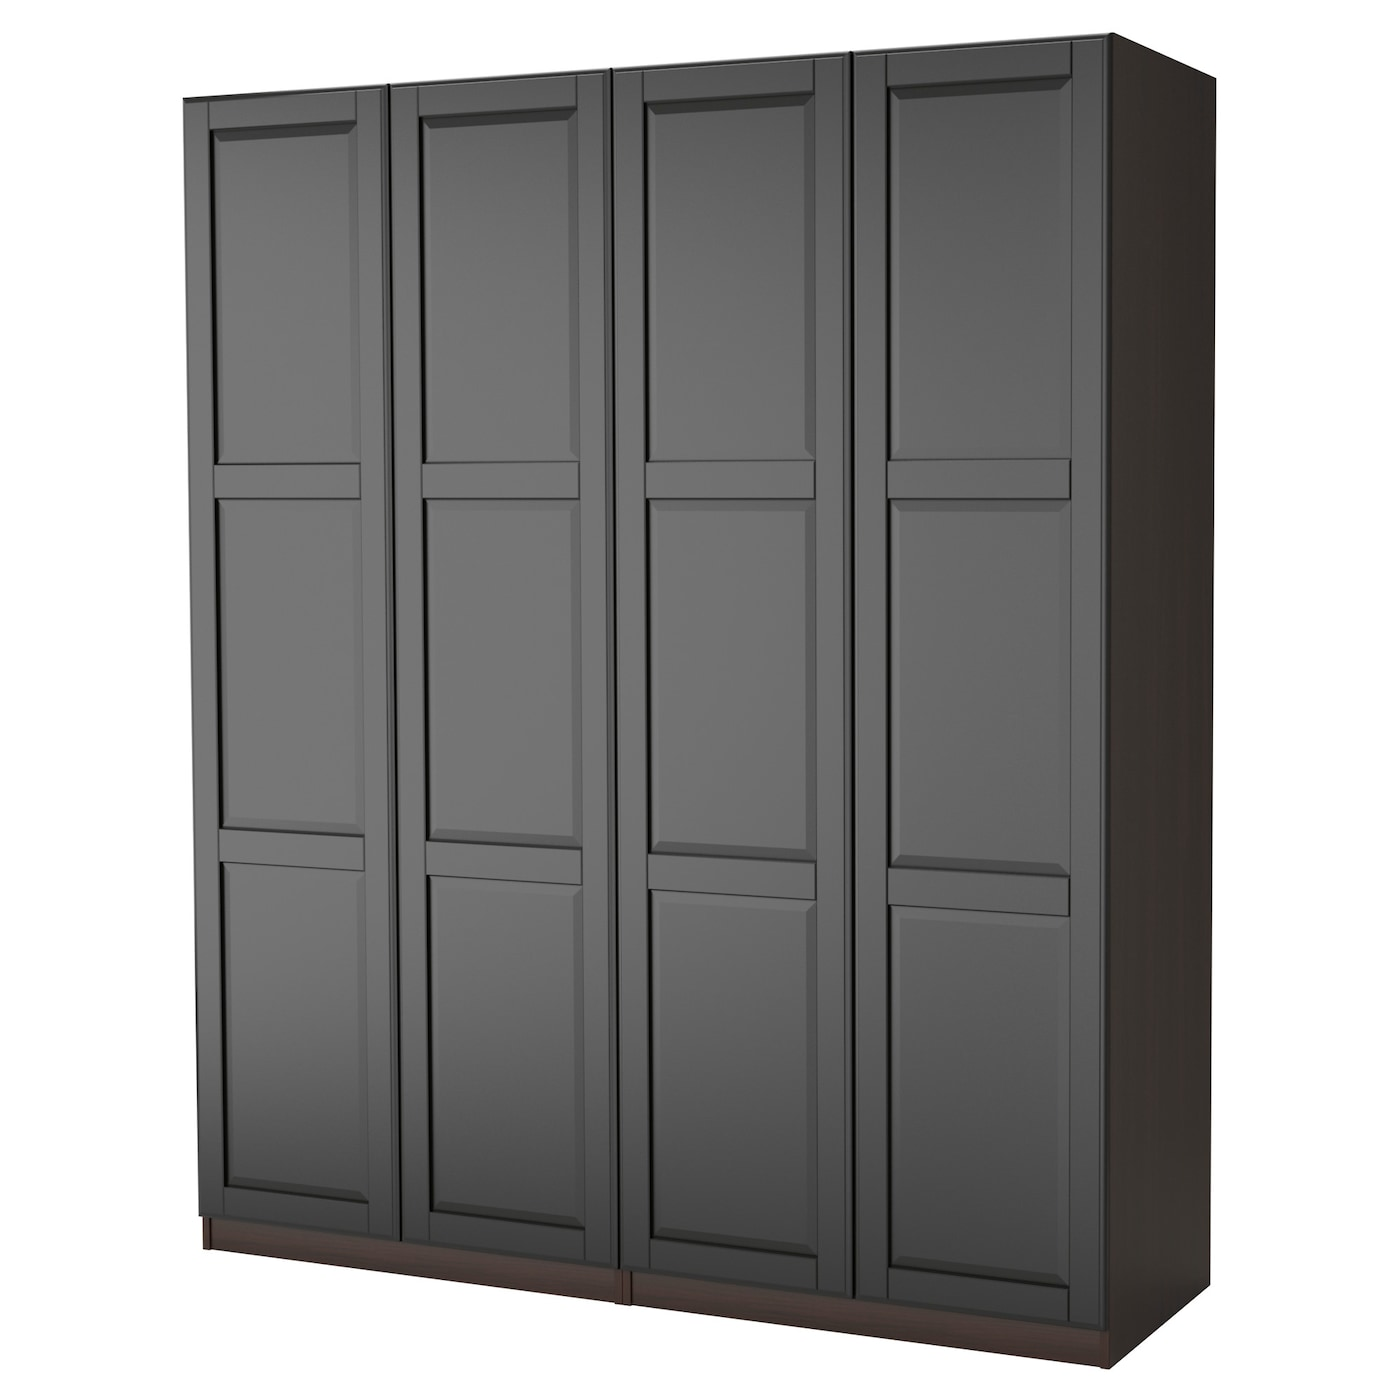 pax wardrobe black brown undredal black 200x60x201 cm ikea. Black Bedroom Furniture Sets. Home Design Ideas